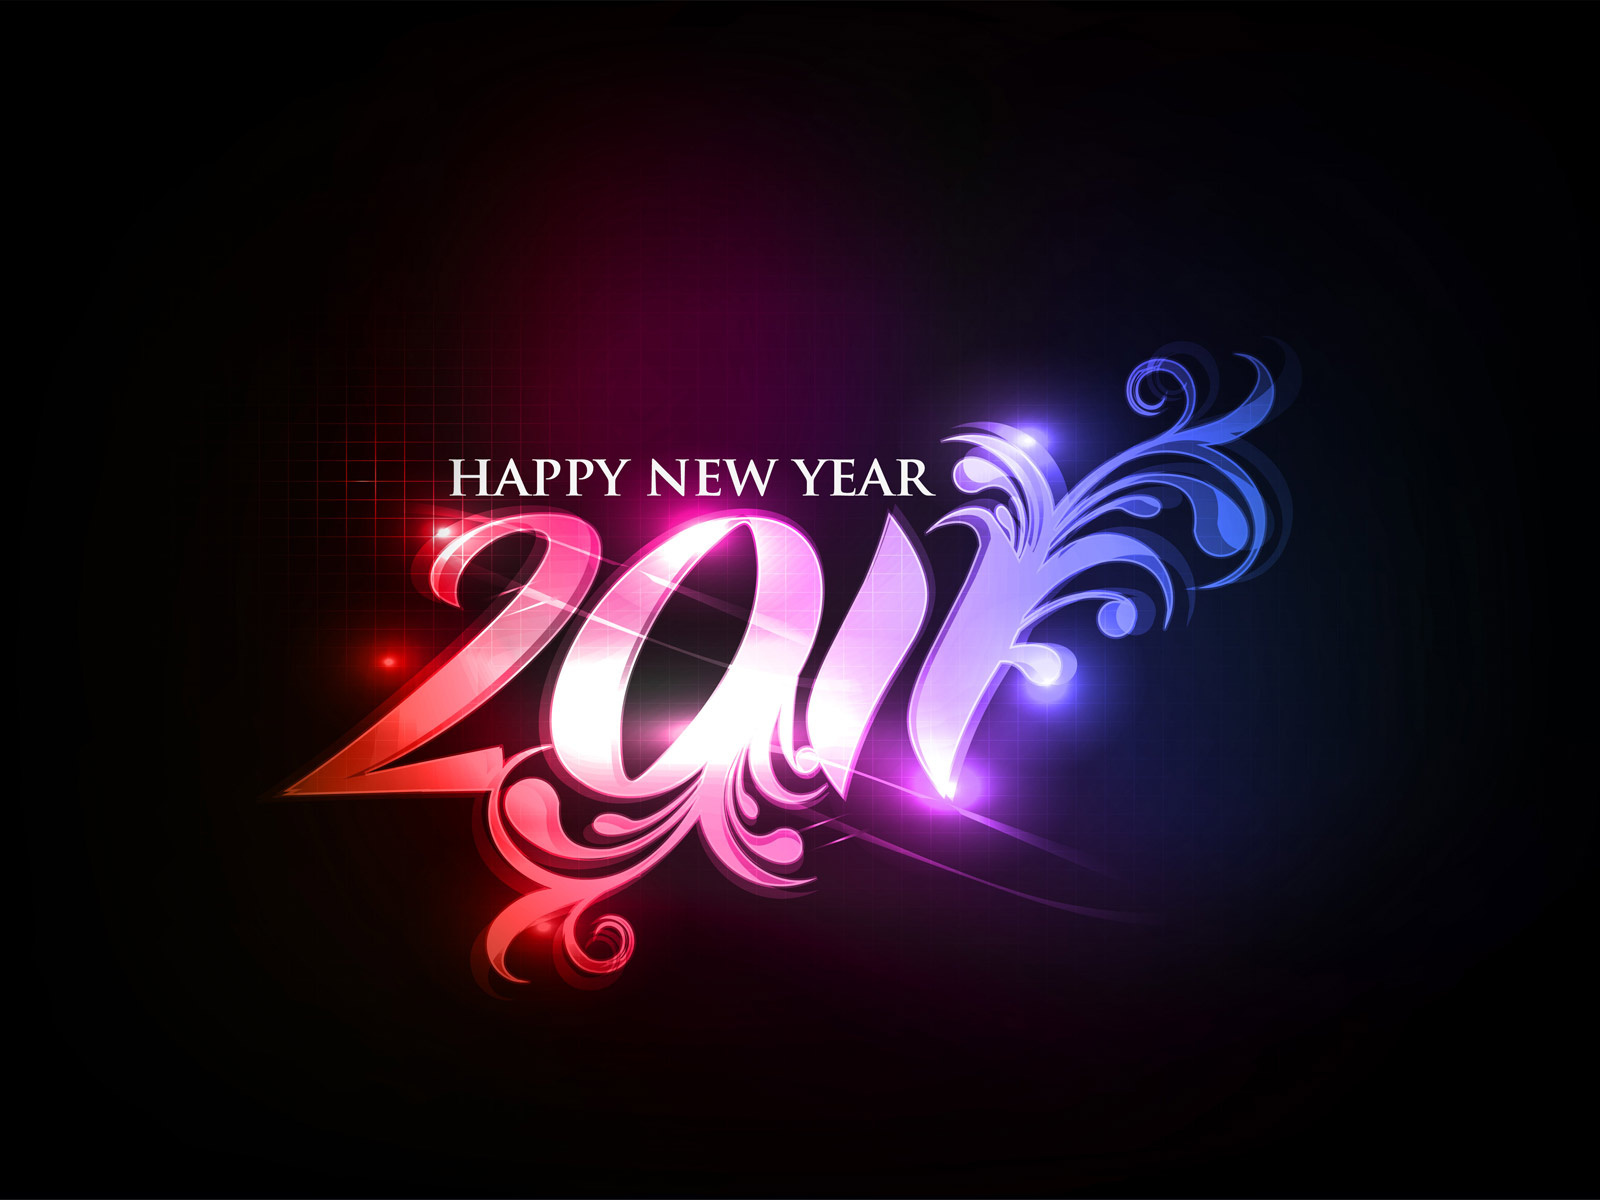 New Year Wallpapers 2011 New Year Pictures Happy New Year 2011. 1600 x 1200.Happy New Year Graphics Free Download